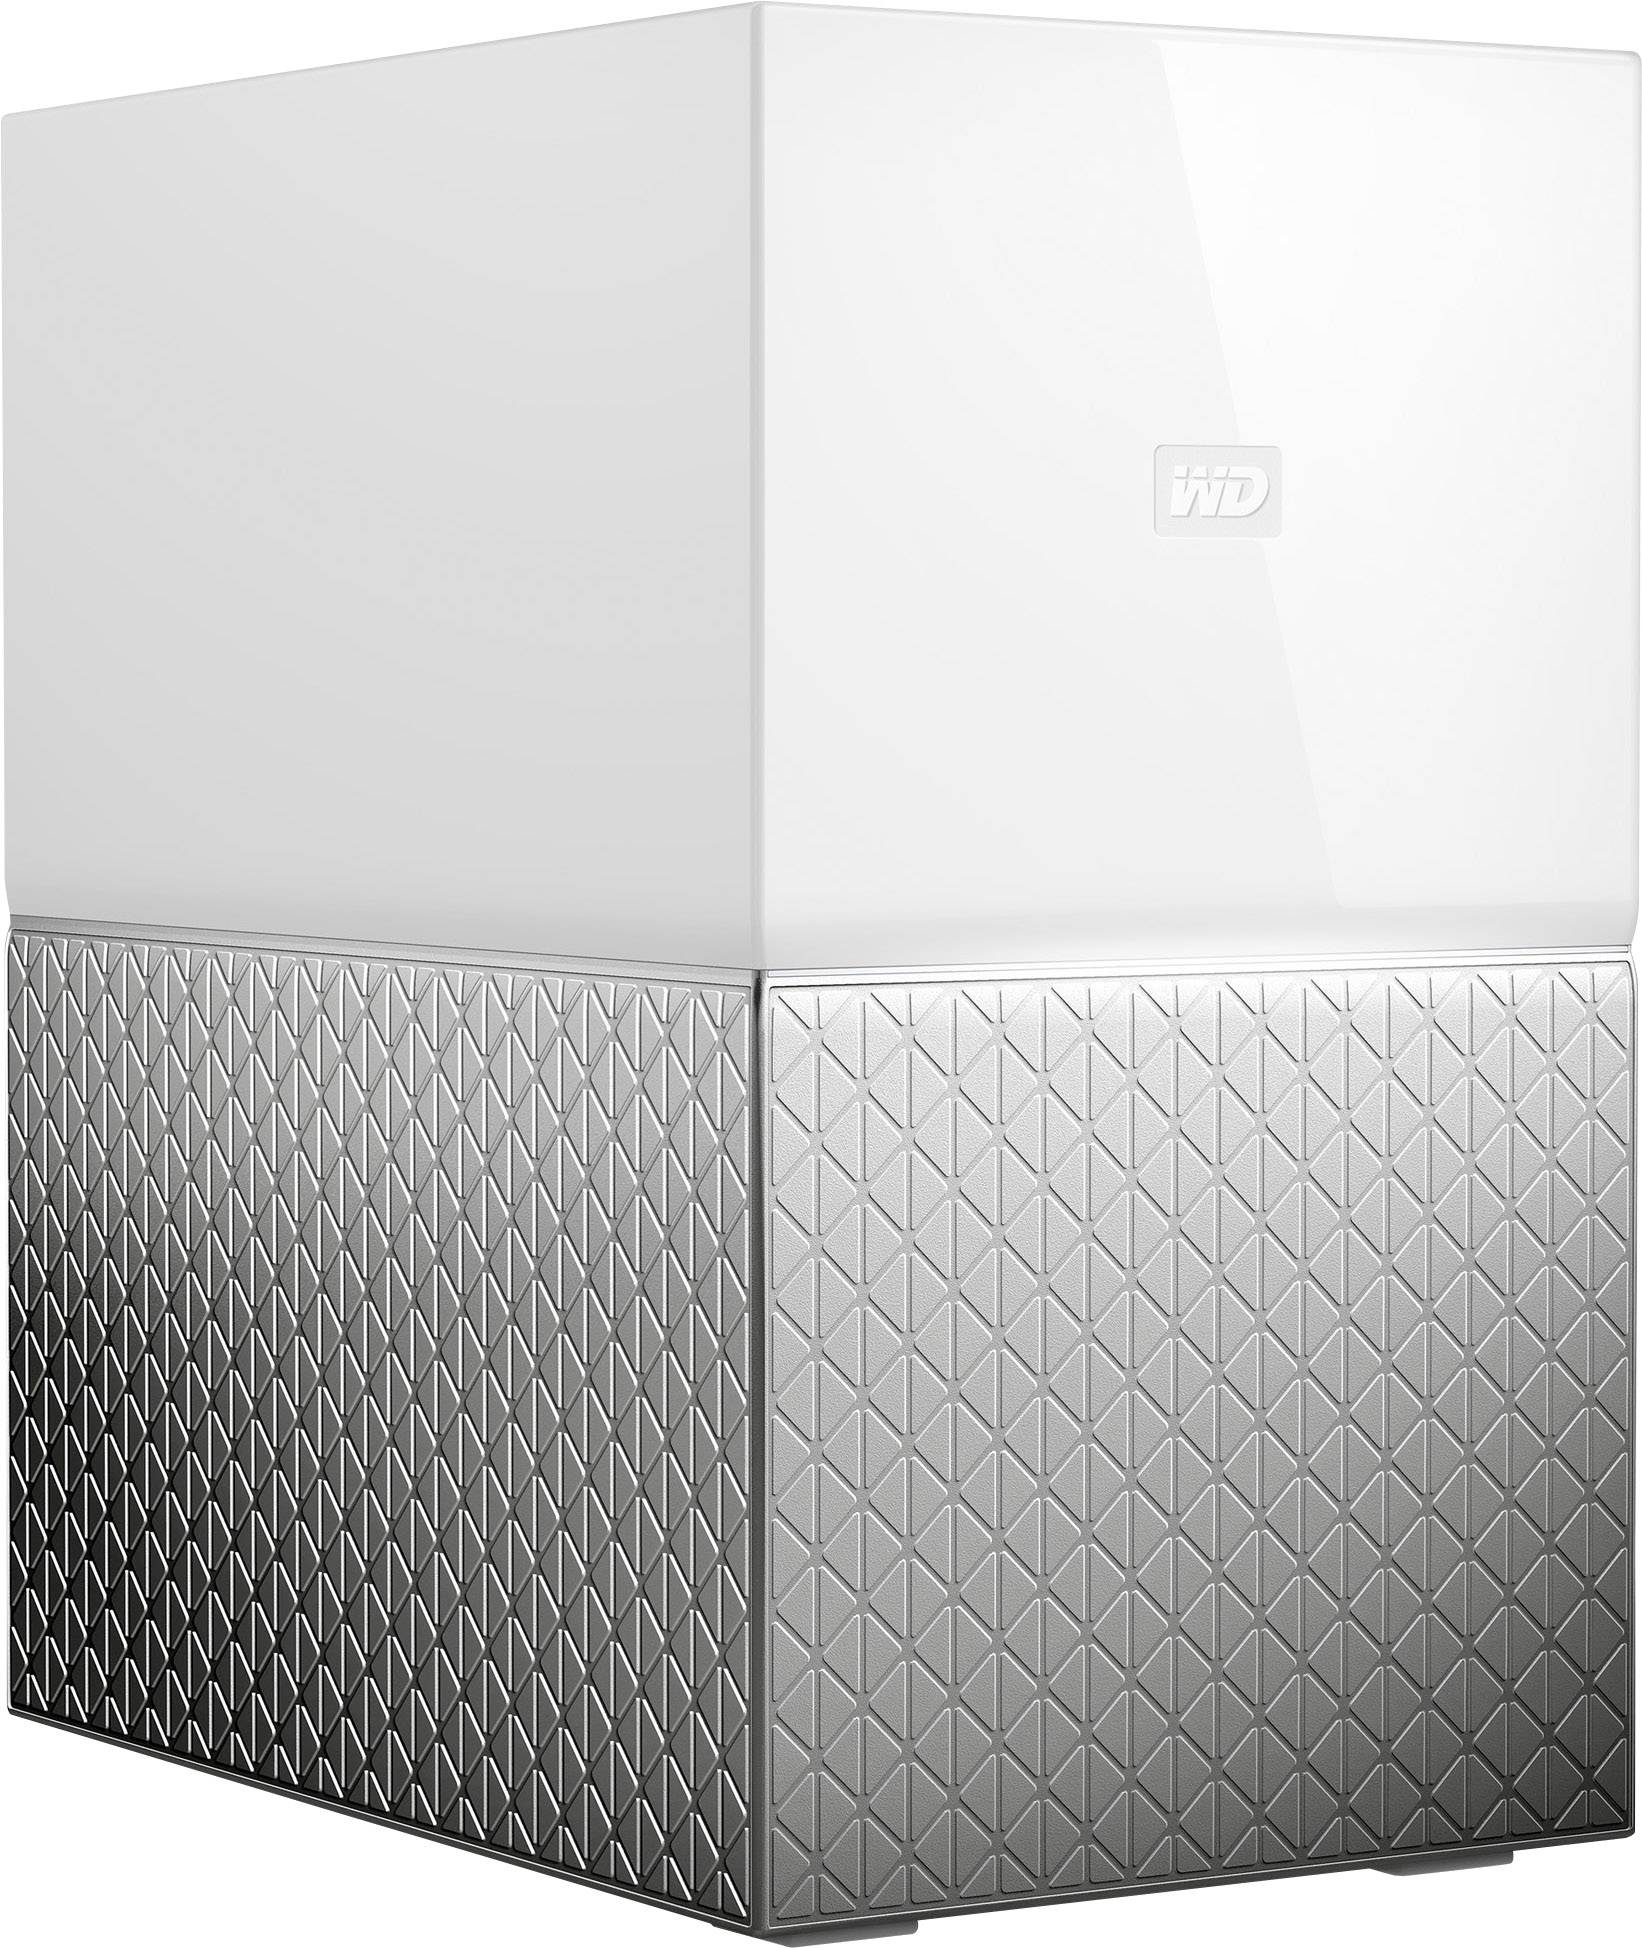 WD My Cloud™ Home Duo WDBMUT0080JWT-EESN Media storage 8 TB RAID-compatible